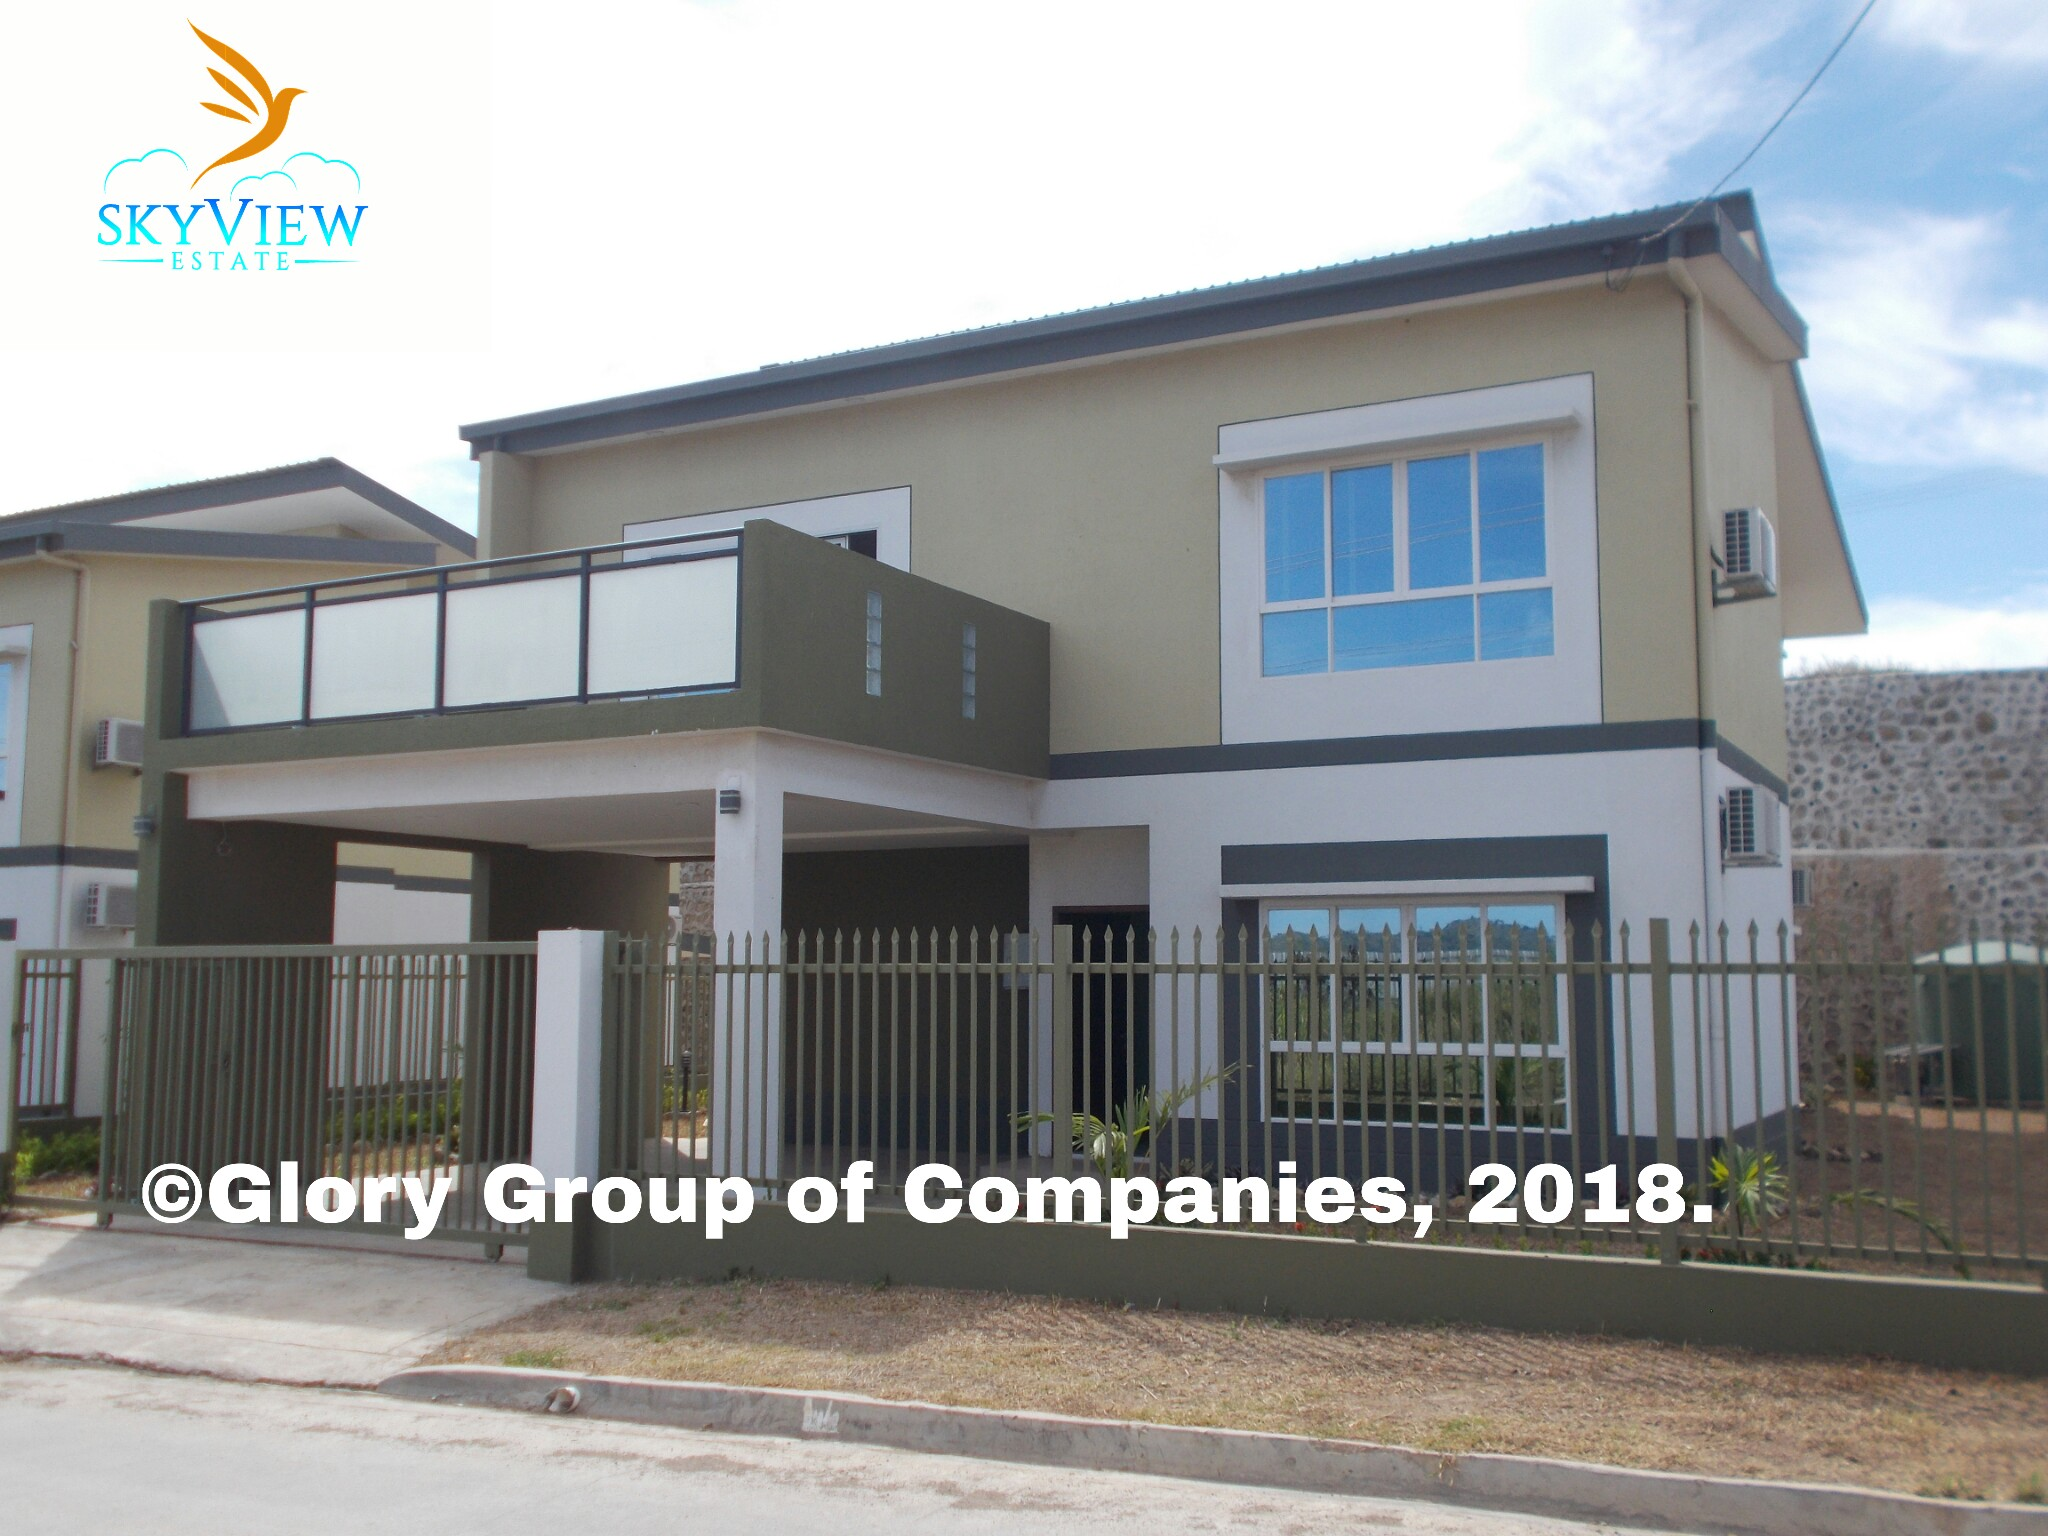 Phase 2 & Phase 3 Developments at Skyview Estate | Glory Group on